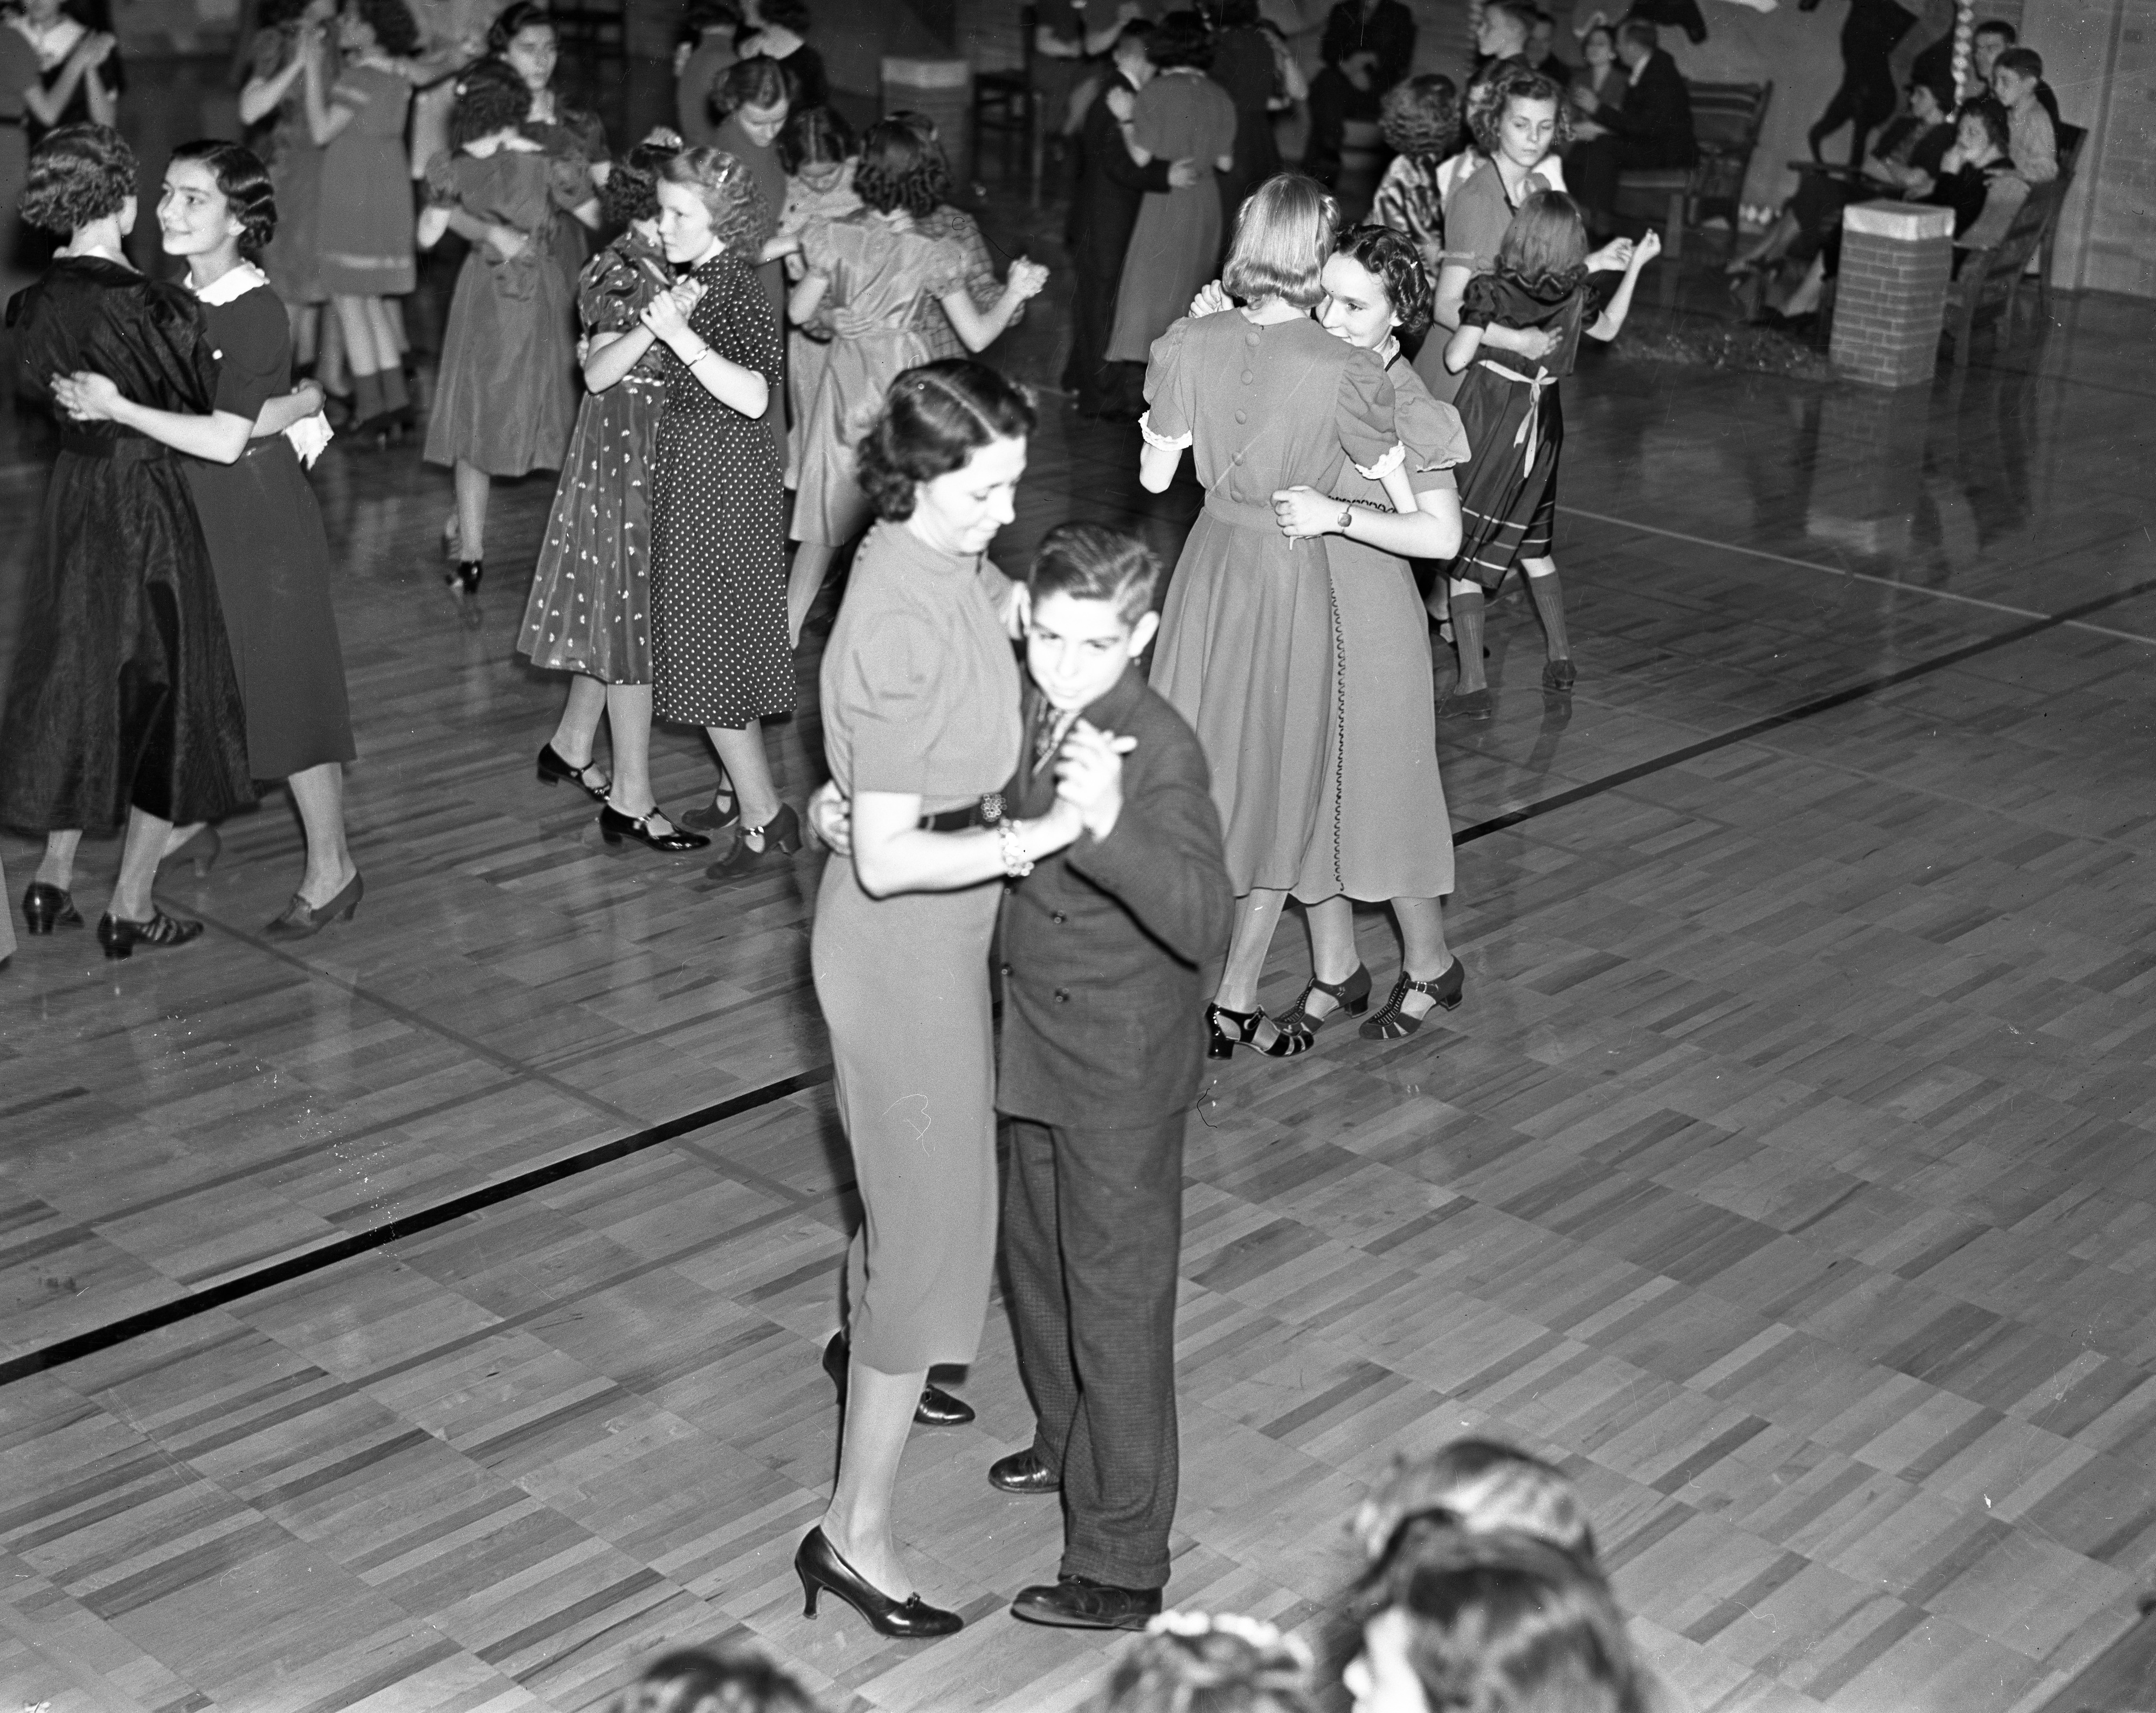 Slauson School Holiday Dance, December 1937 image